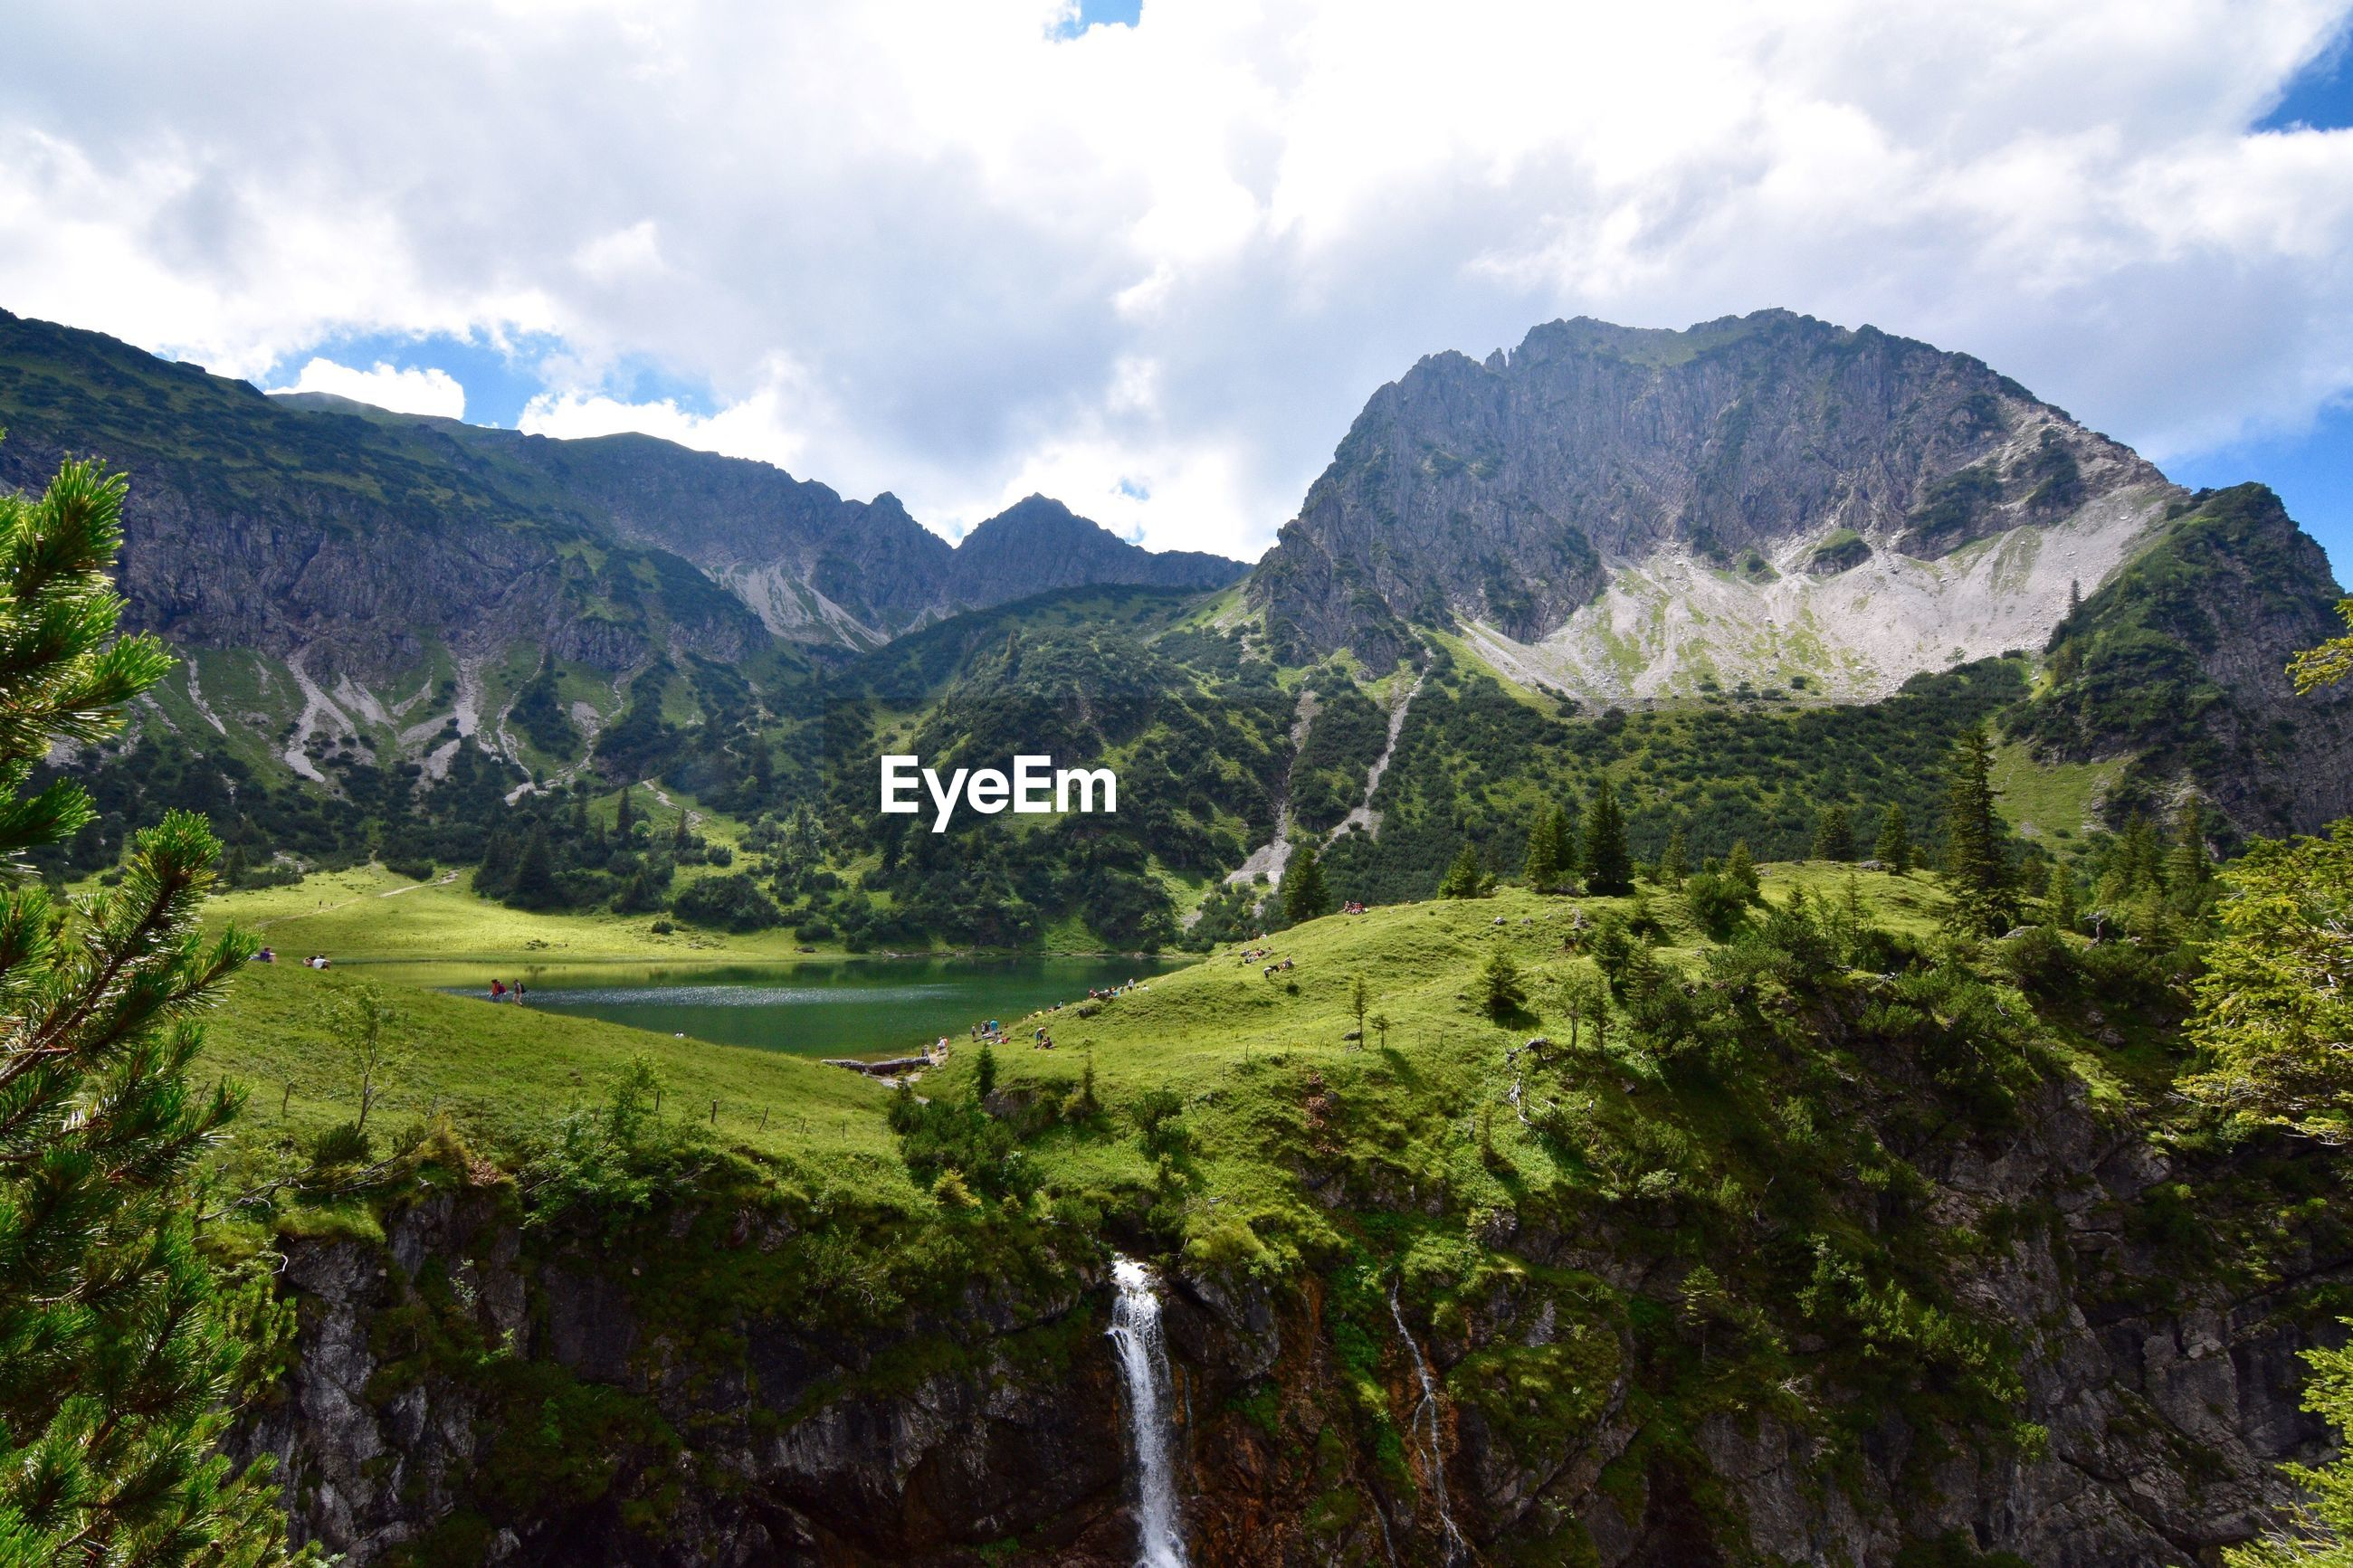 Scenic view of untere gaisalpsee in allgau alps against sky